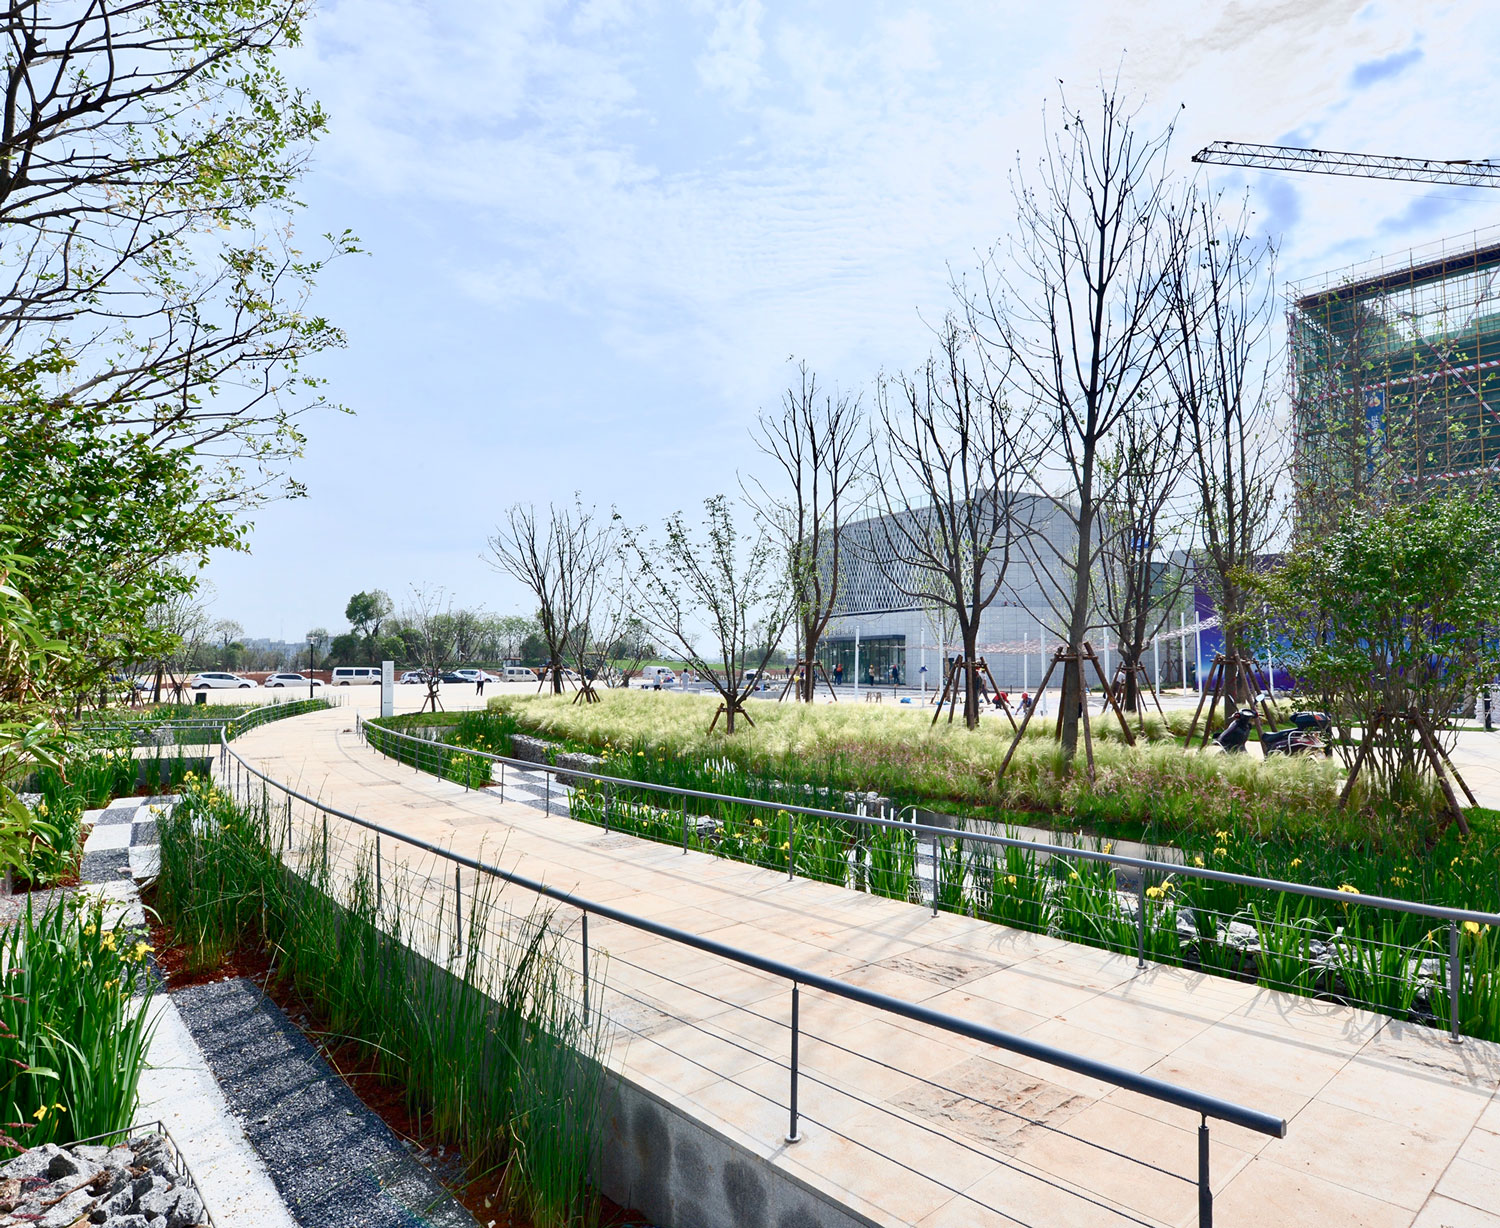 Rule Water Street by YIYU Design « Landscape Architecture ... on prairie climate, prairie winter, prairie seed collecting, prairie landforms, prairie landscape flowers, prairie style landscape ideas, prairie scene, pond design, prairie biome, prairie people,